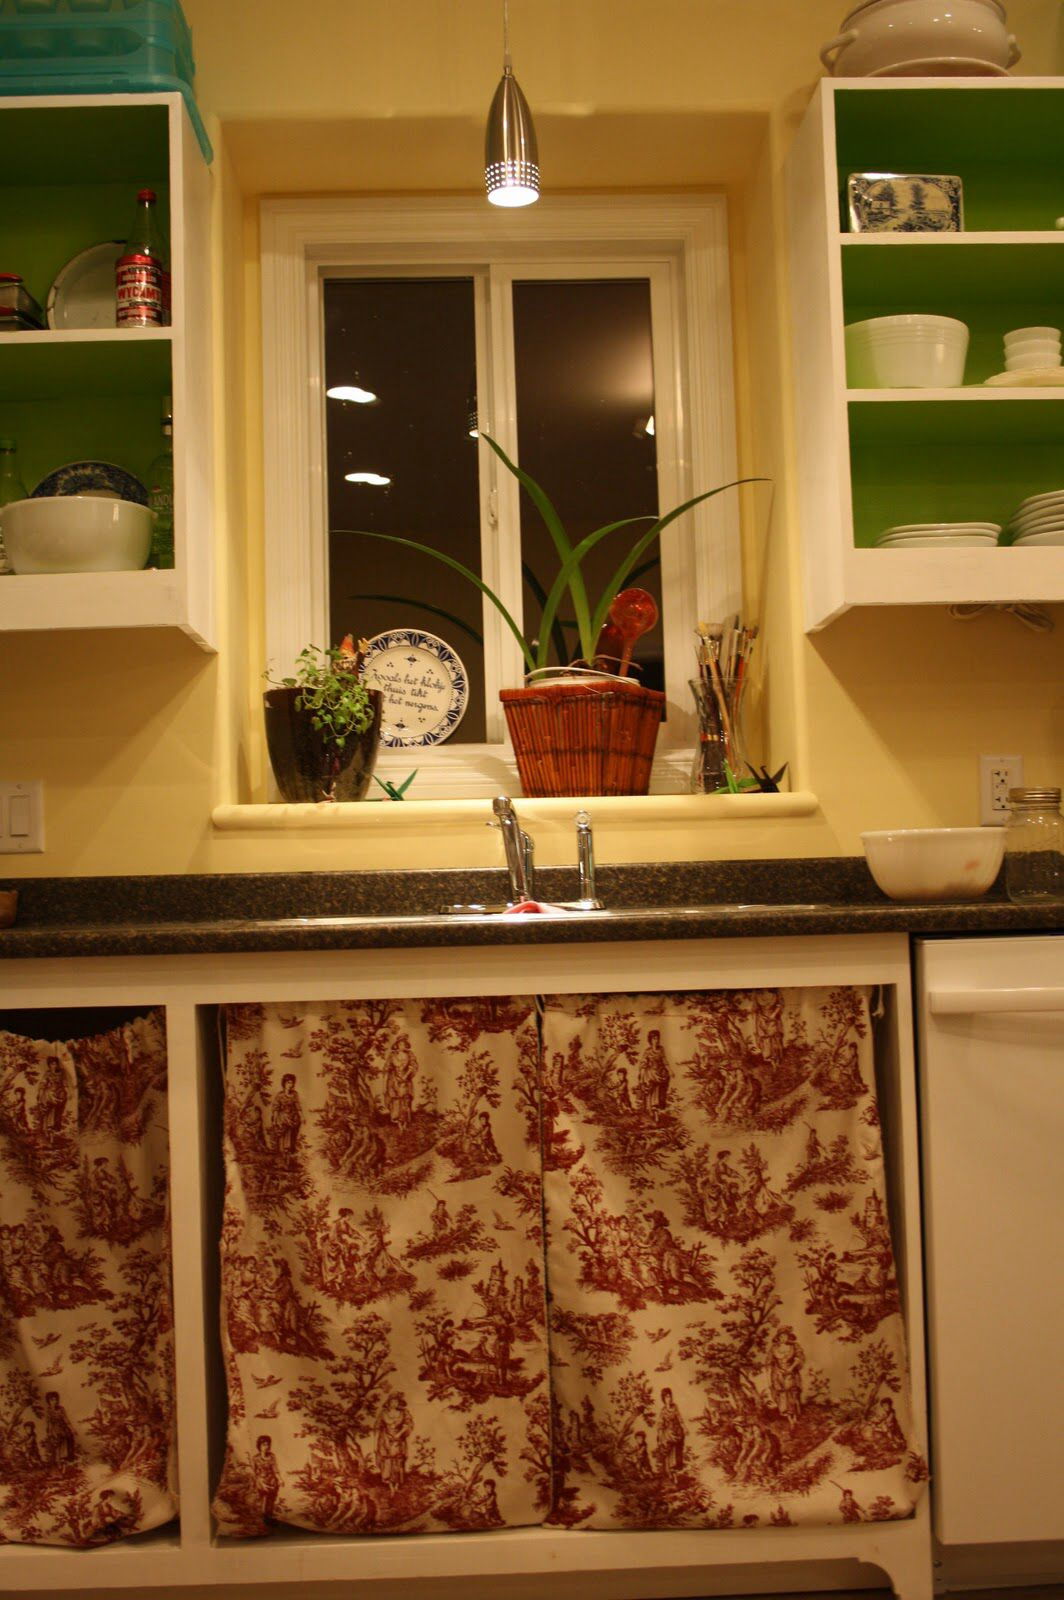 Home Made Kitchen Cabinets Poorly Hung Toile Cloth Cabinet Curtains Instead Of Doors More